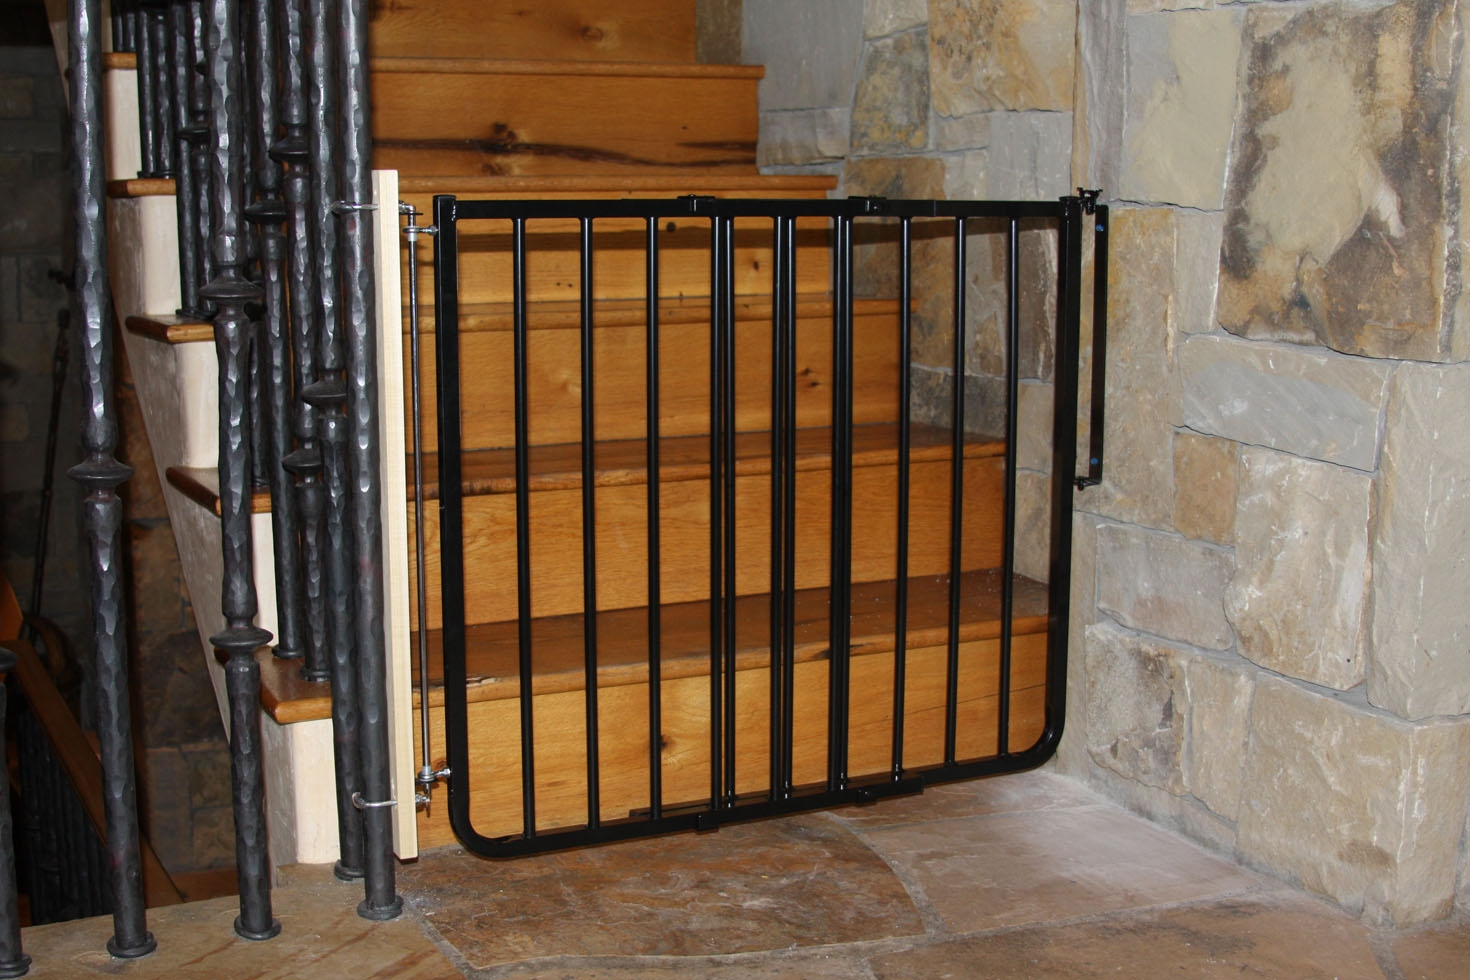 Stairway Special Safety Gate Baby Gates Cardinal Gates | Steel Gates And Stairs | Dreamstime | Handrail | Stainless Steel | Fence Gate | Egress